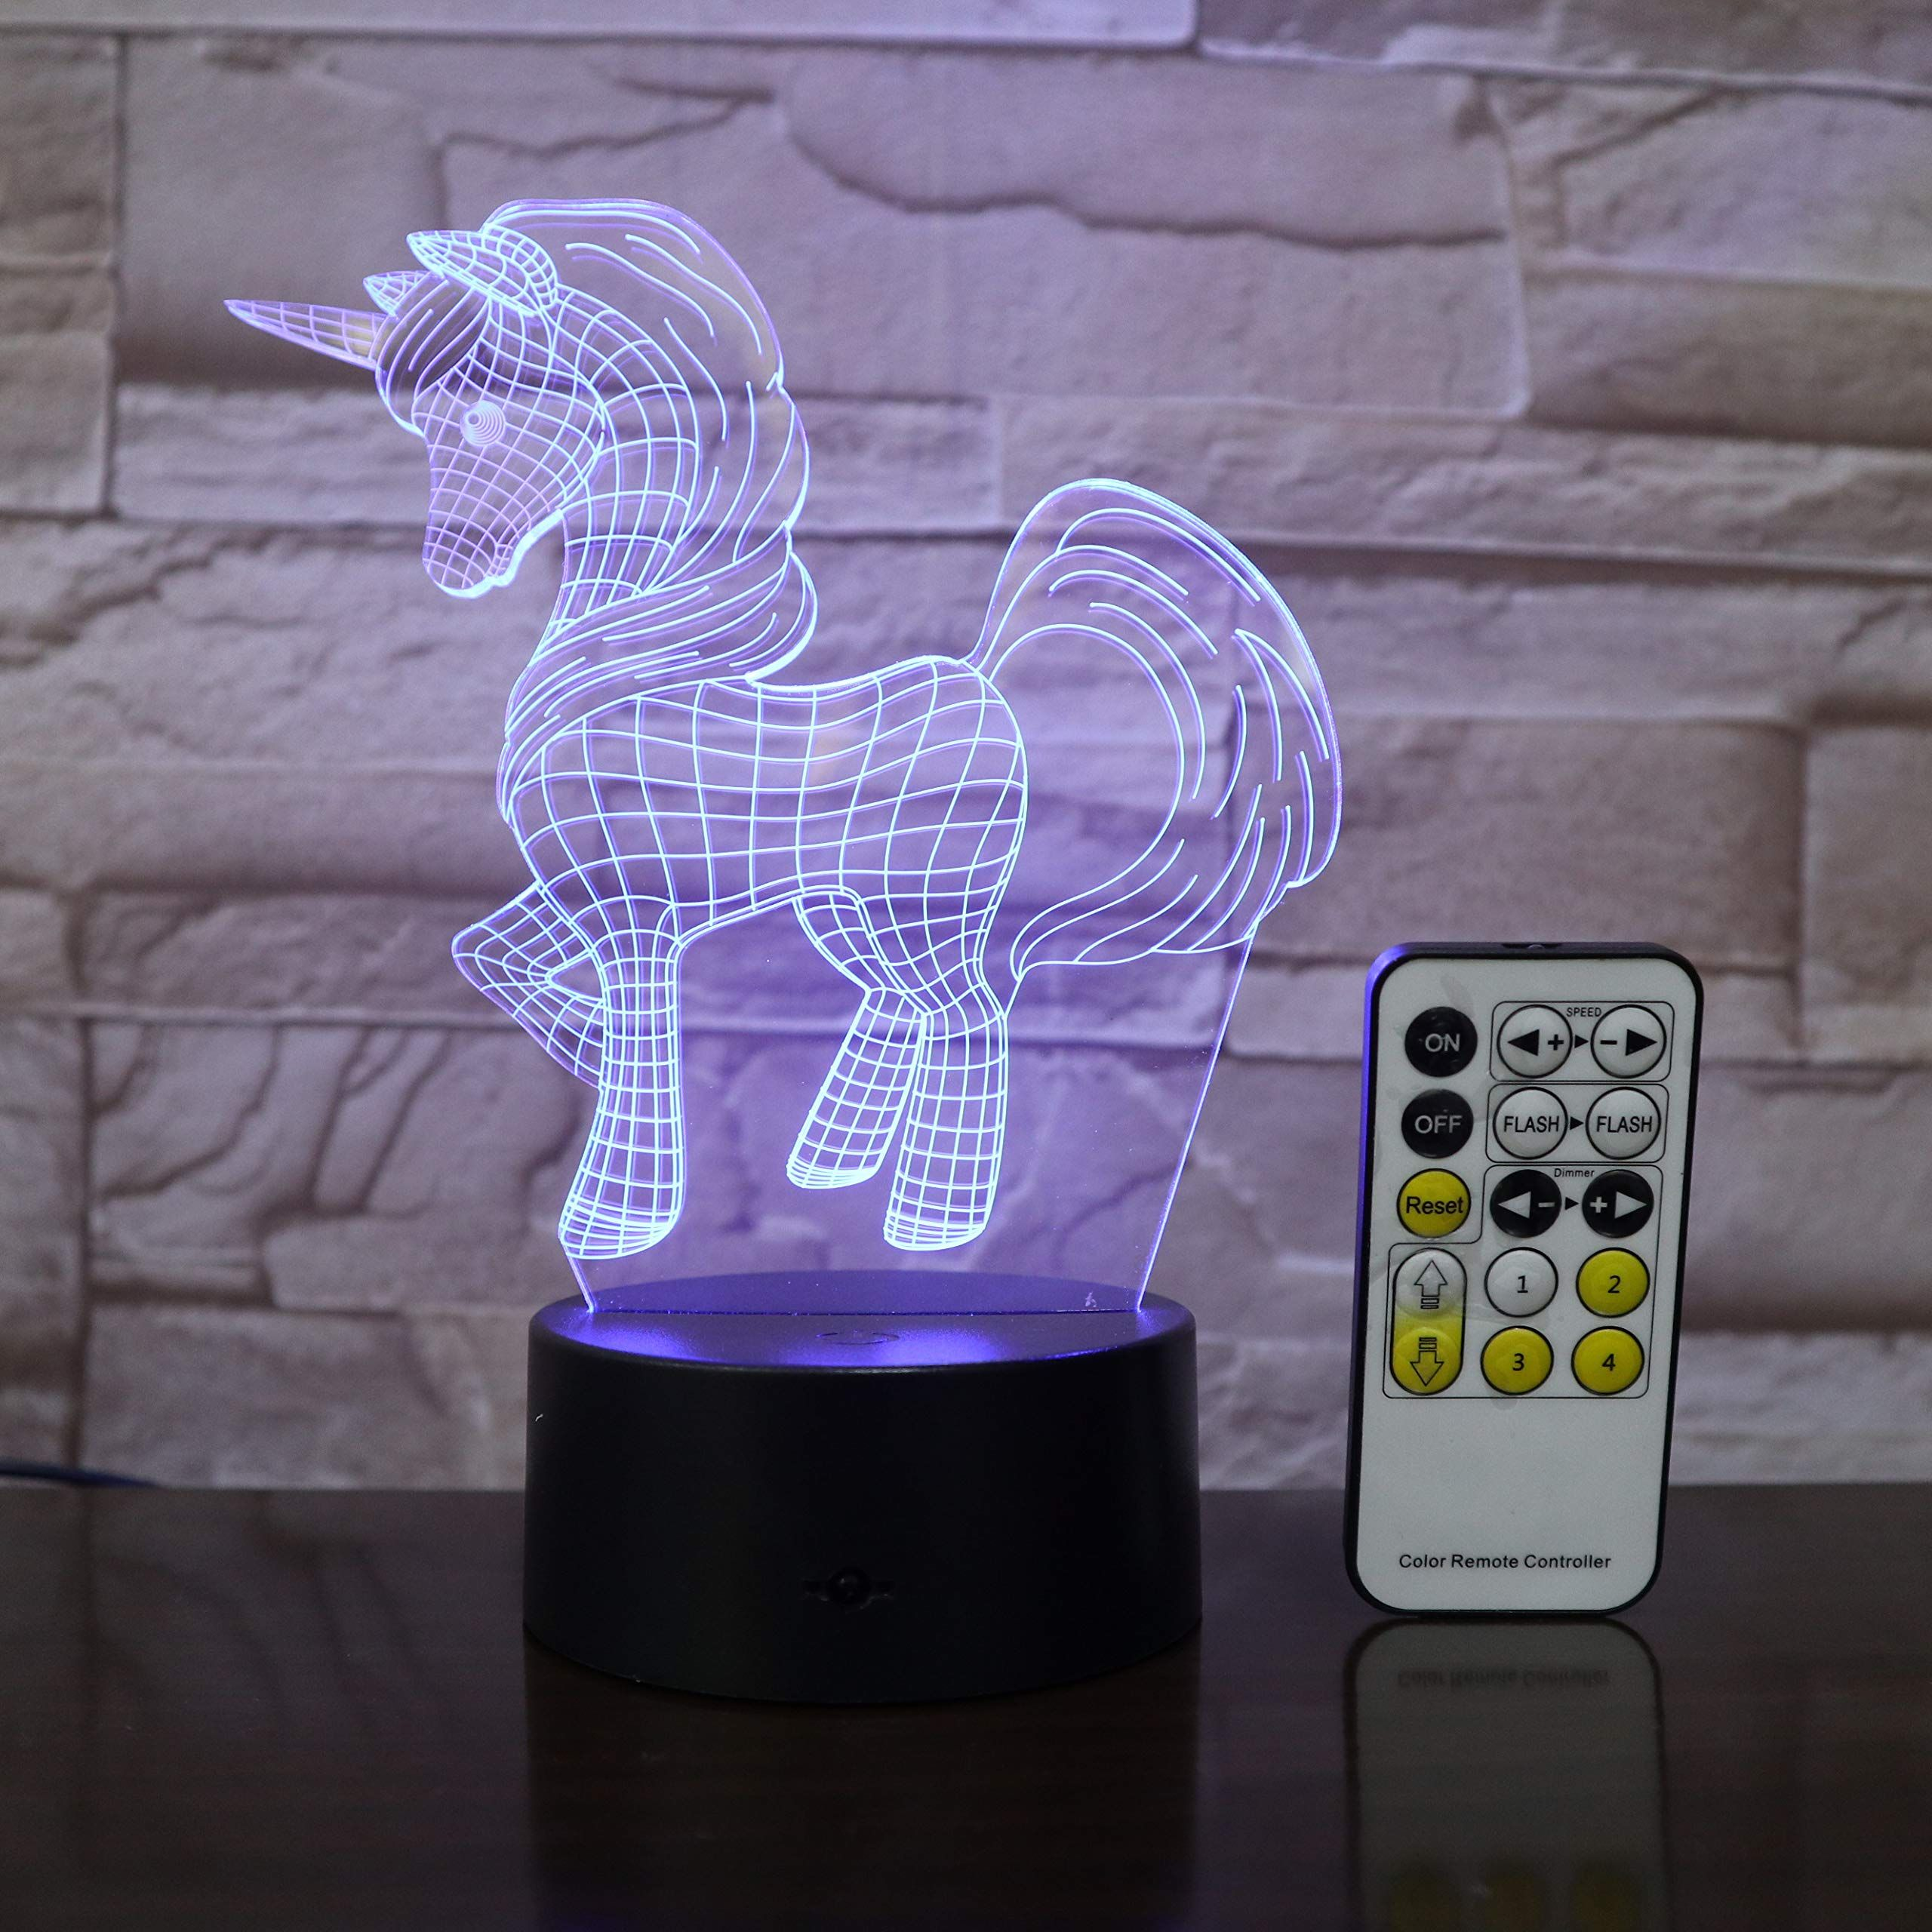 Unicorn 3d Lamp Led Table Night Light Remote Control Gift Kids Friends Decorations 7 Colors Birthday Lighting 3d Night Light Night Light Kid Room Decor